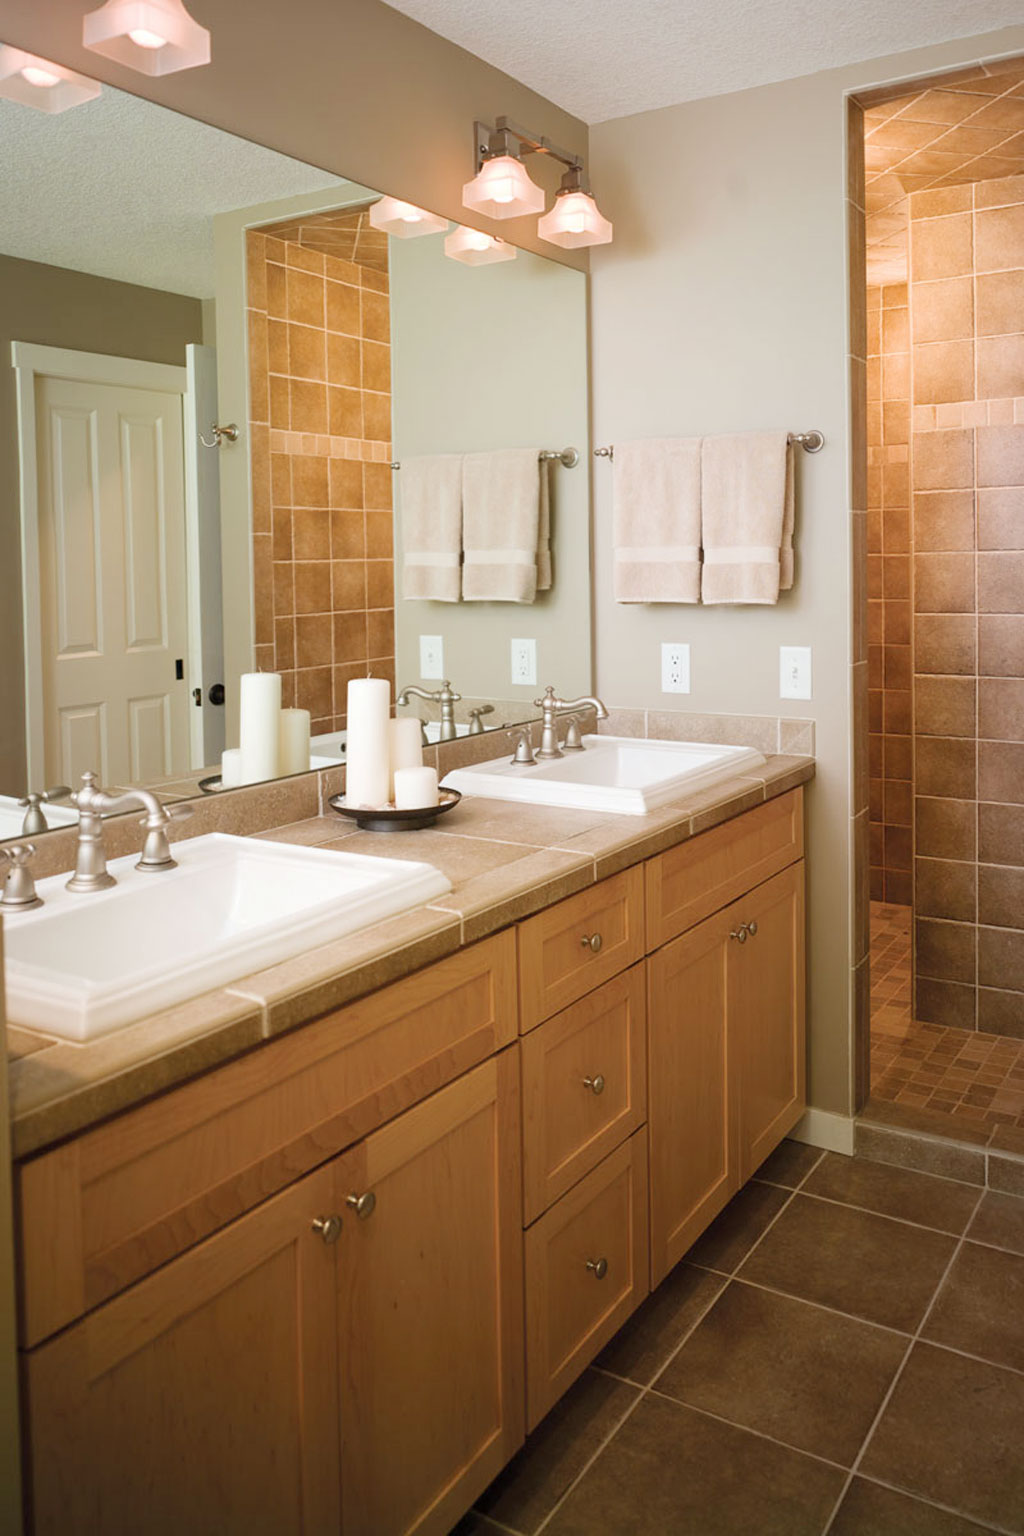 Calculate How Much is a Bathroom Remodel | EwdInteriors